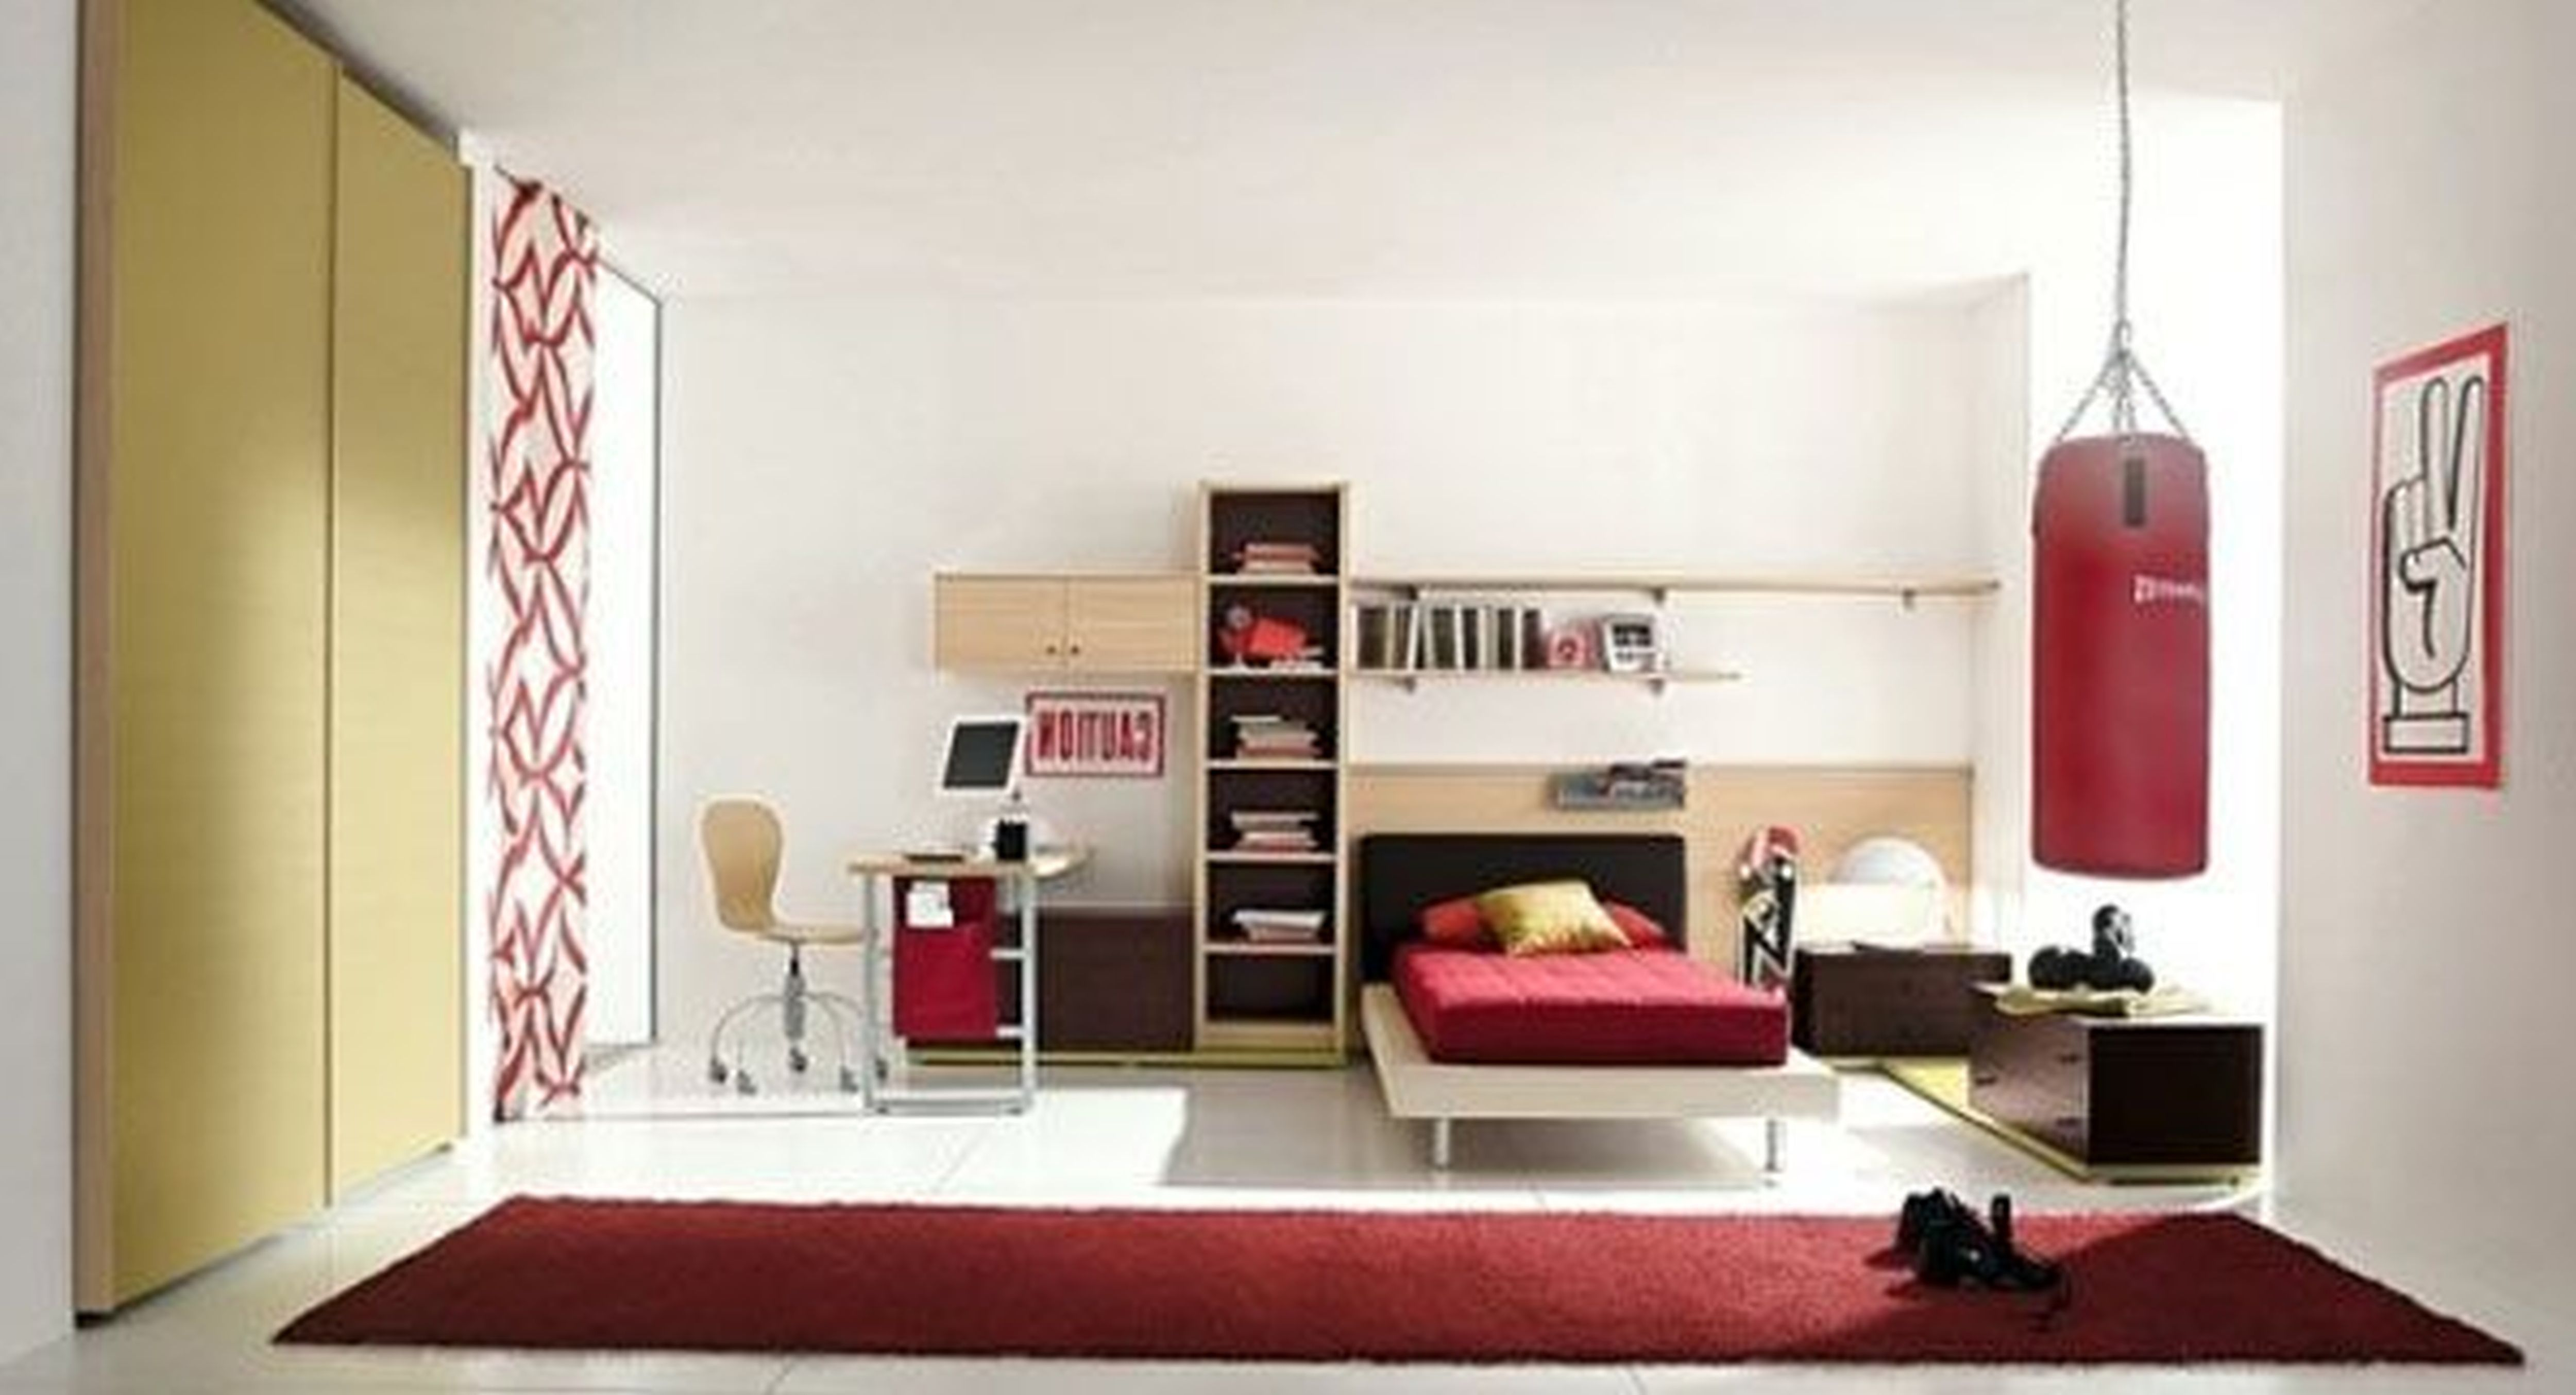 Bedroom Designs For Adults Bedroom Room Designs For Teens Really Cool Beds Teenagers Single